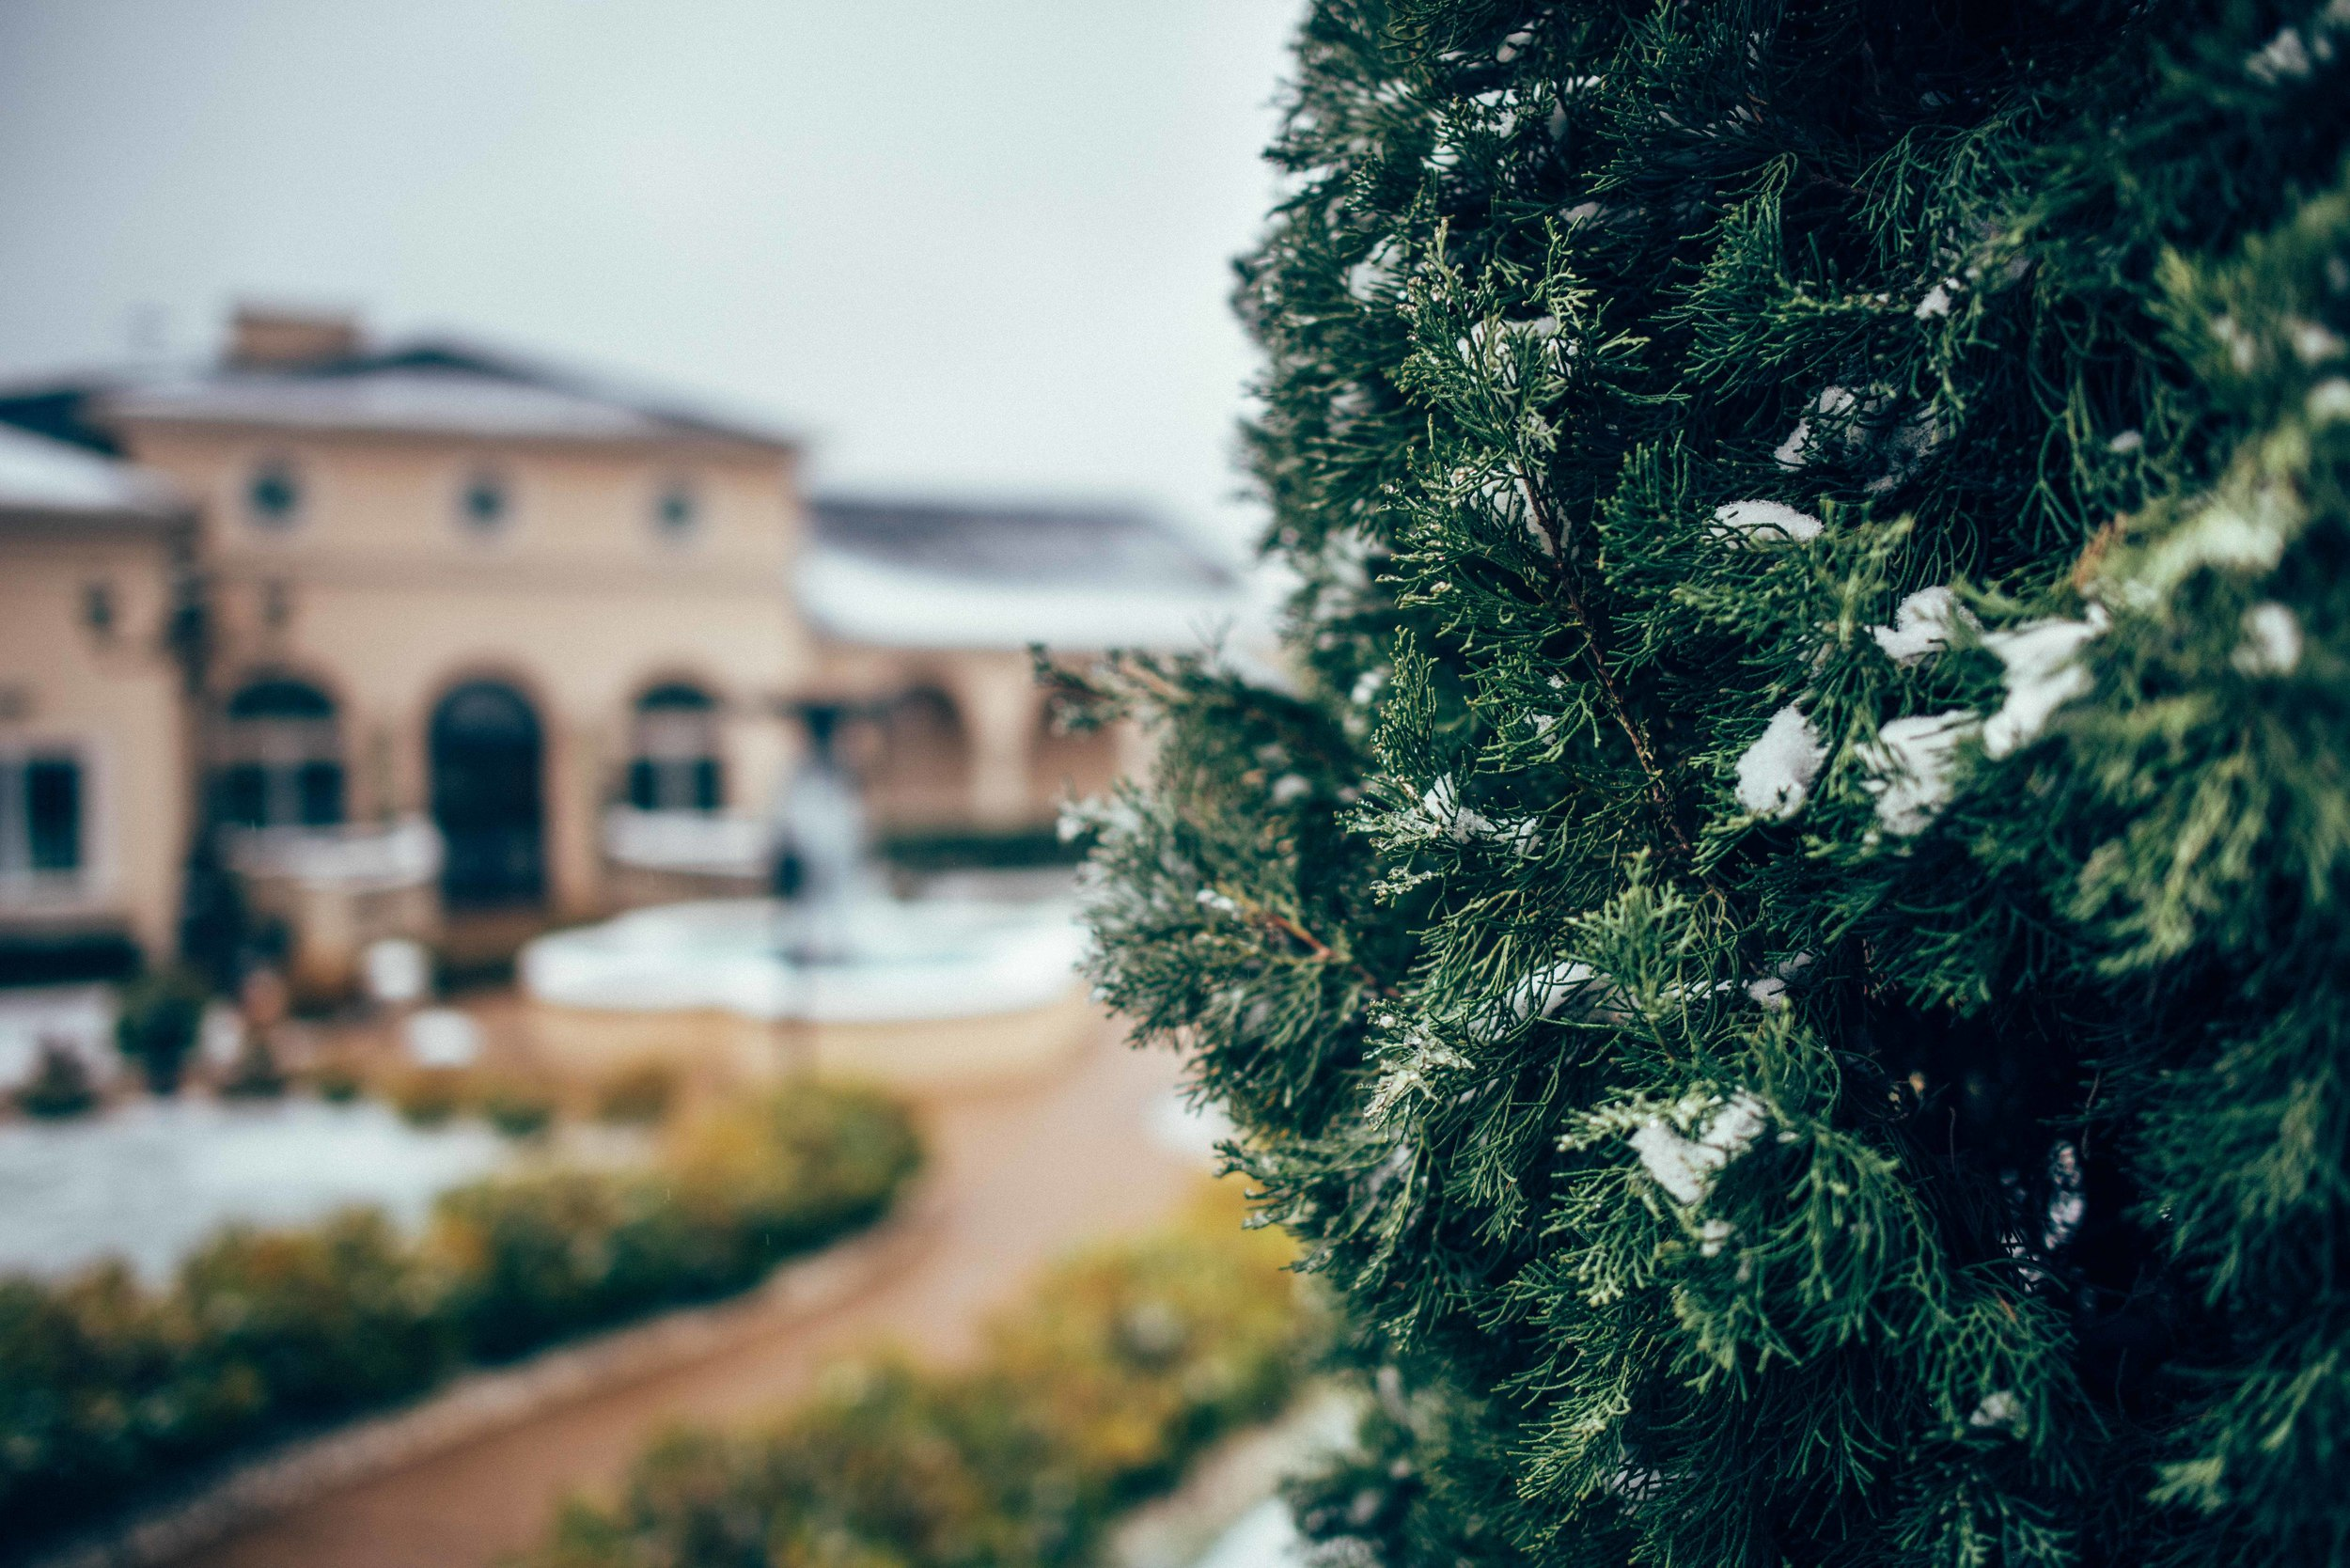 Mediterranean Villa was covered in a beautiful layer of snow and ice